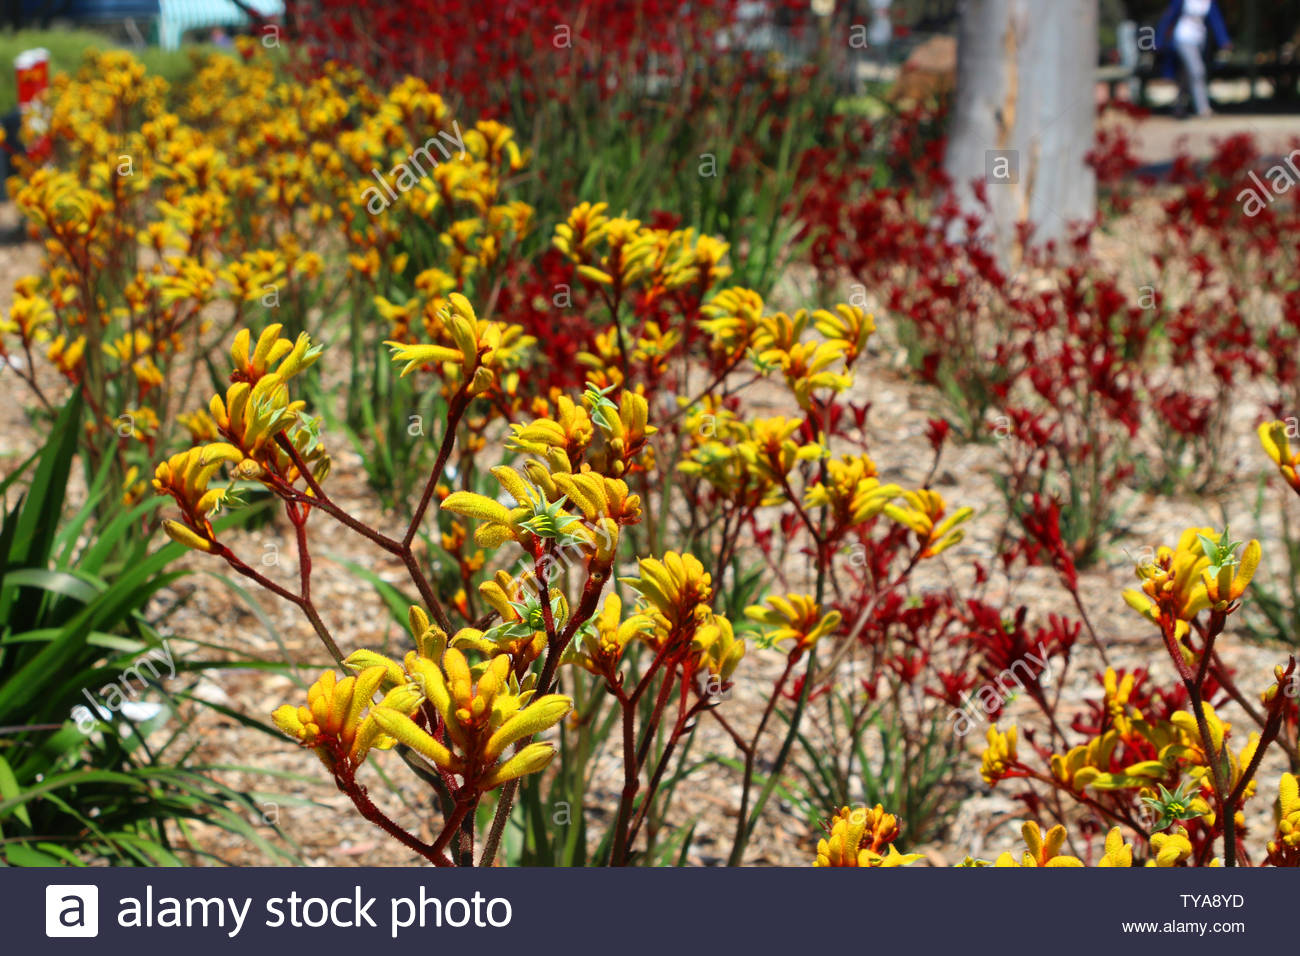 0a98f6d25 Flowerbed with yellow and red kangaroo paw flower (Anigozanthos  pulcherrimus and flavidus) endemic to